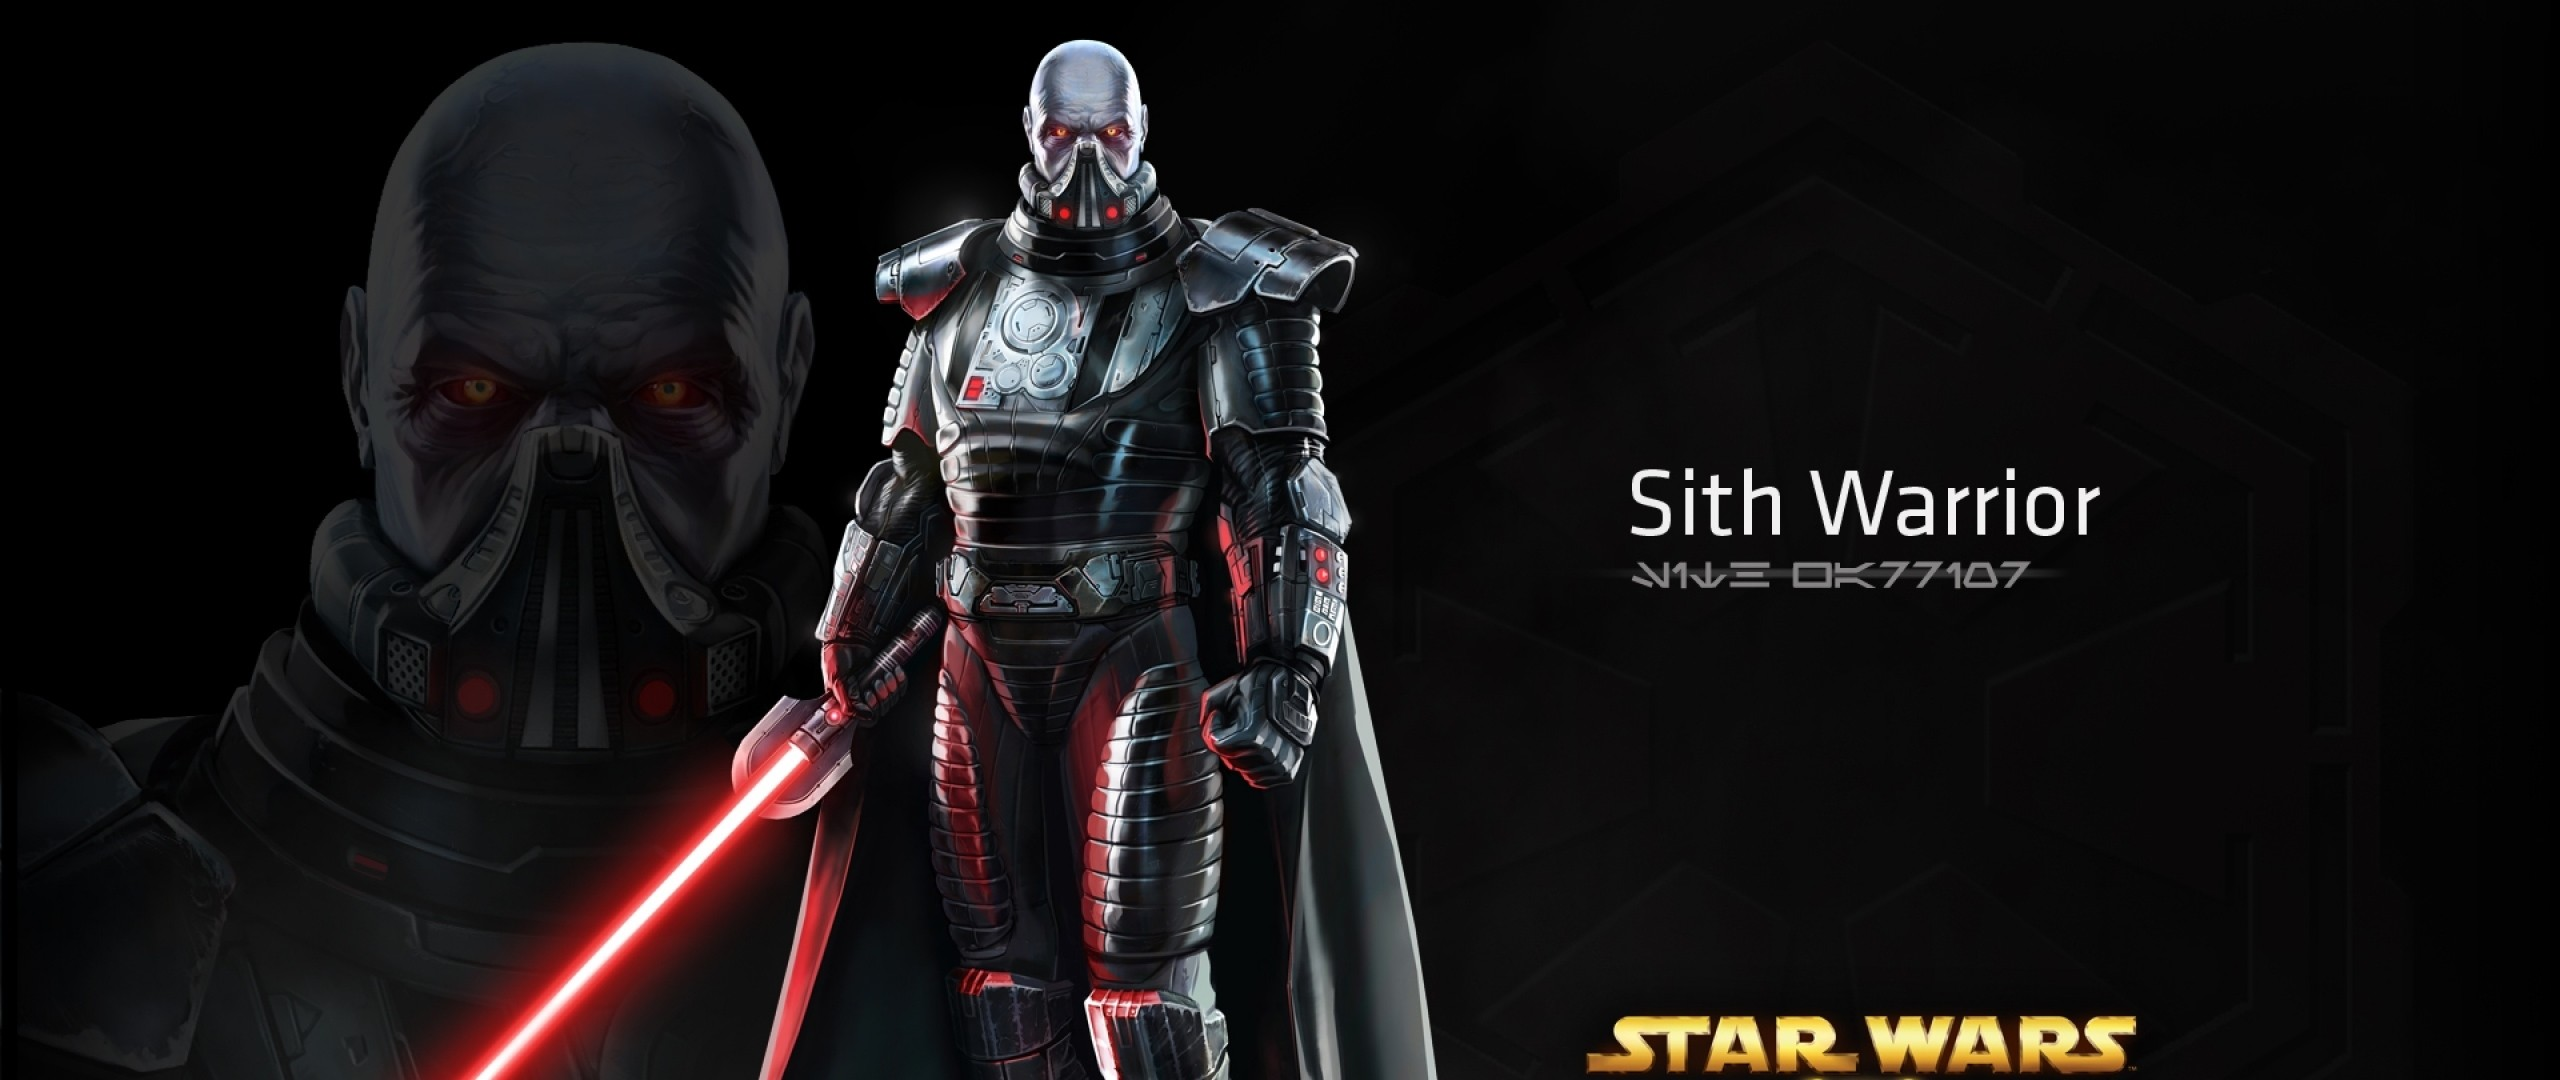 2560x1080 Preview wallpaper star wars the old republic, sith warrior, character,  lightsaber